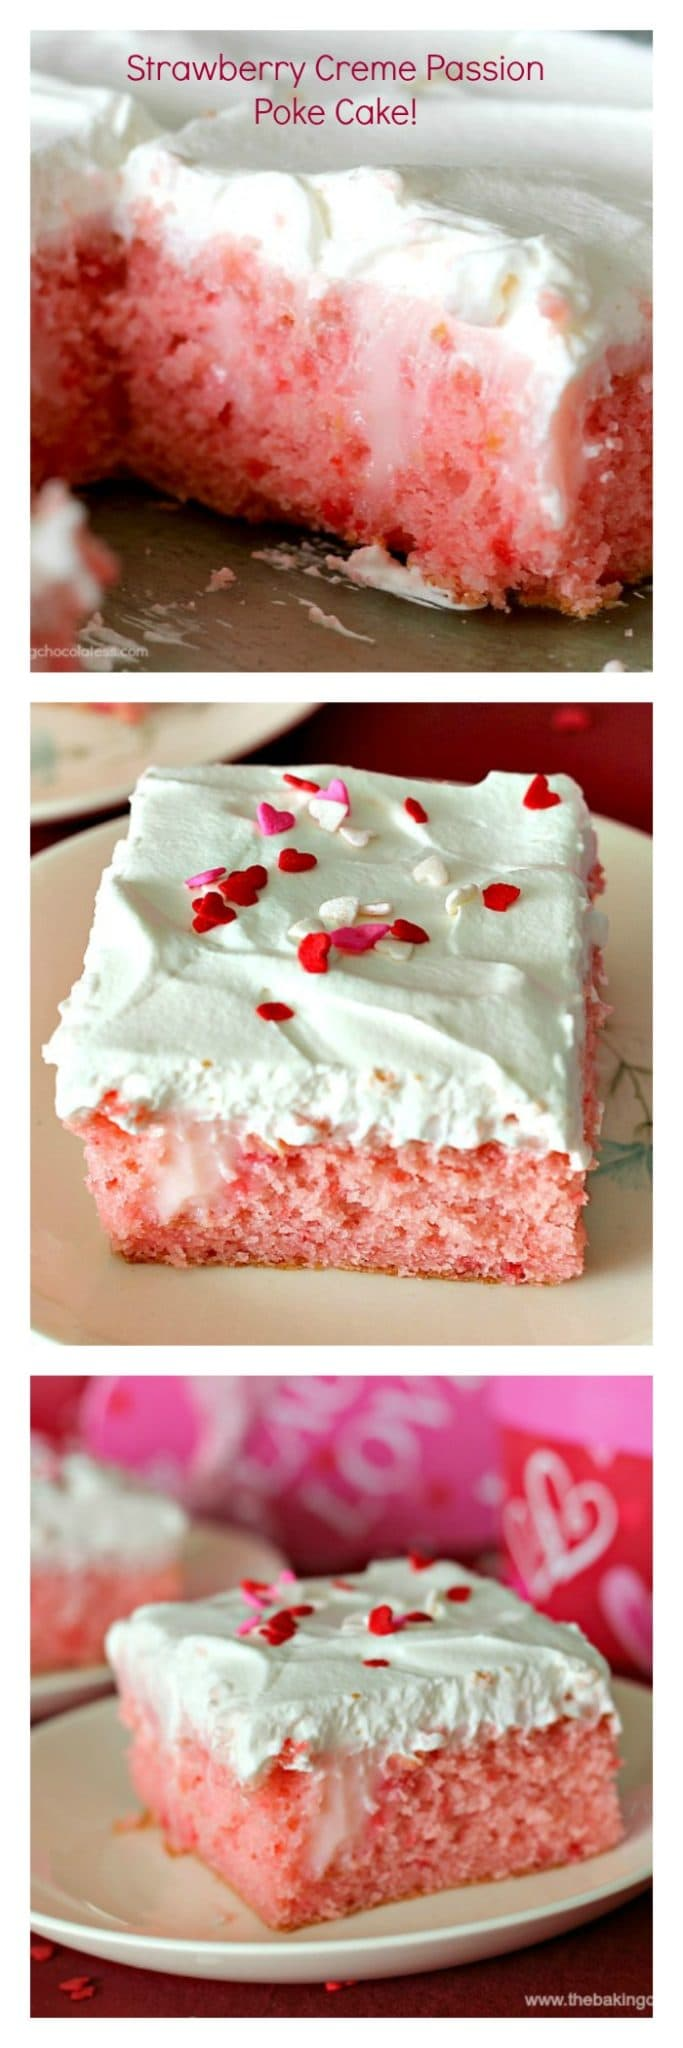 Perfect for any time of the year, this Strawberry Creme 'Passion' Poke Cake is dazzling, passionate and bursting out the doors with dreamy flavors!